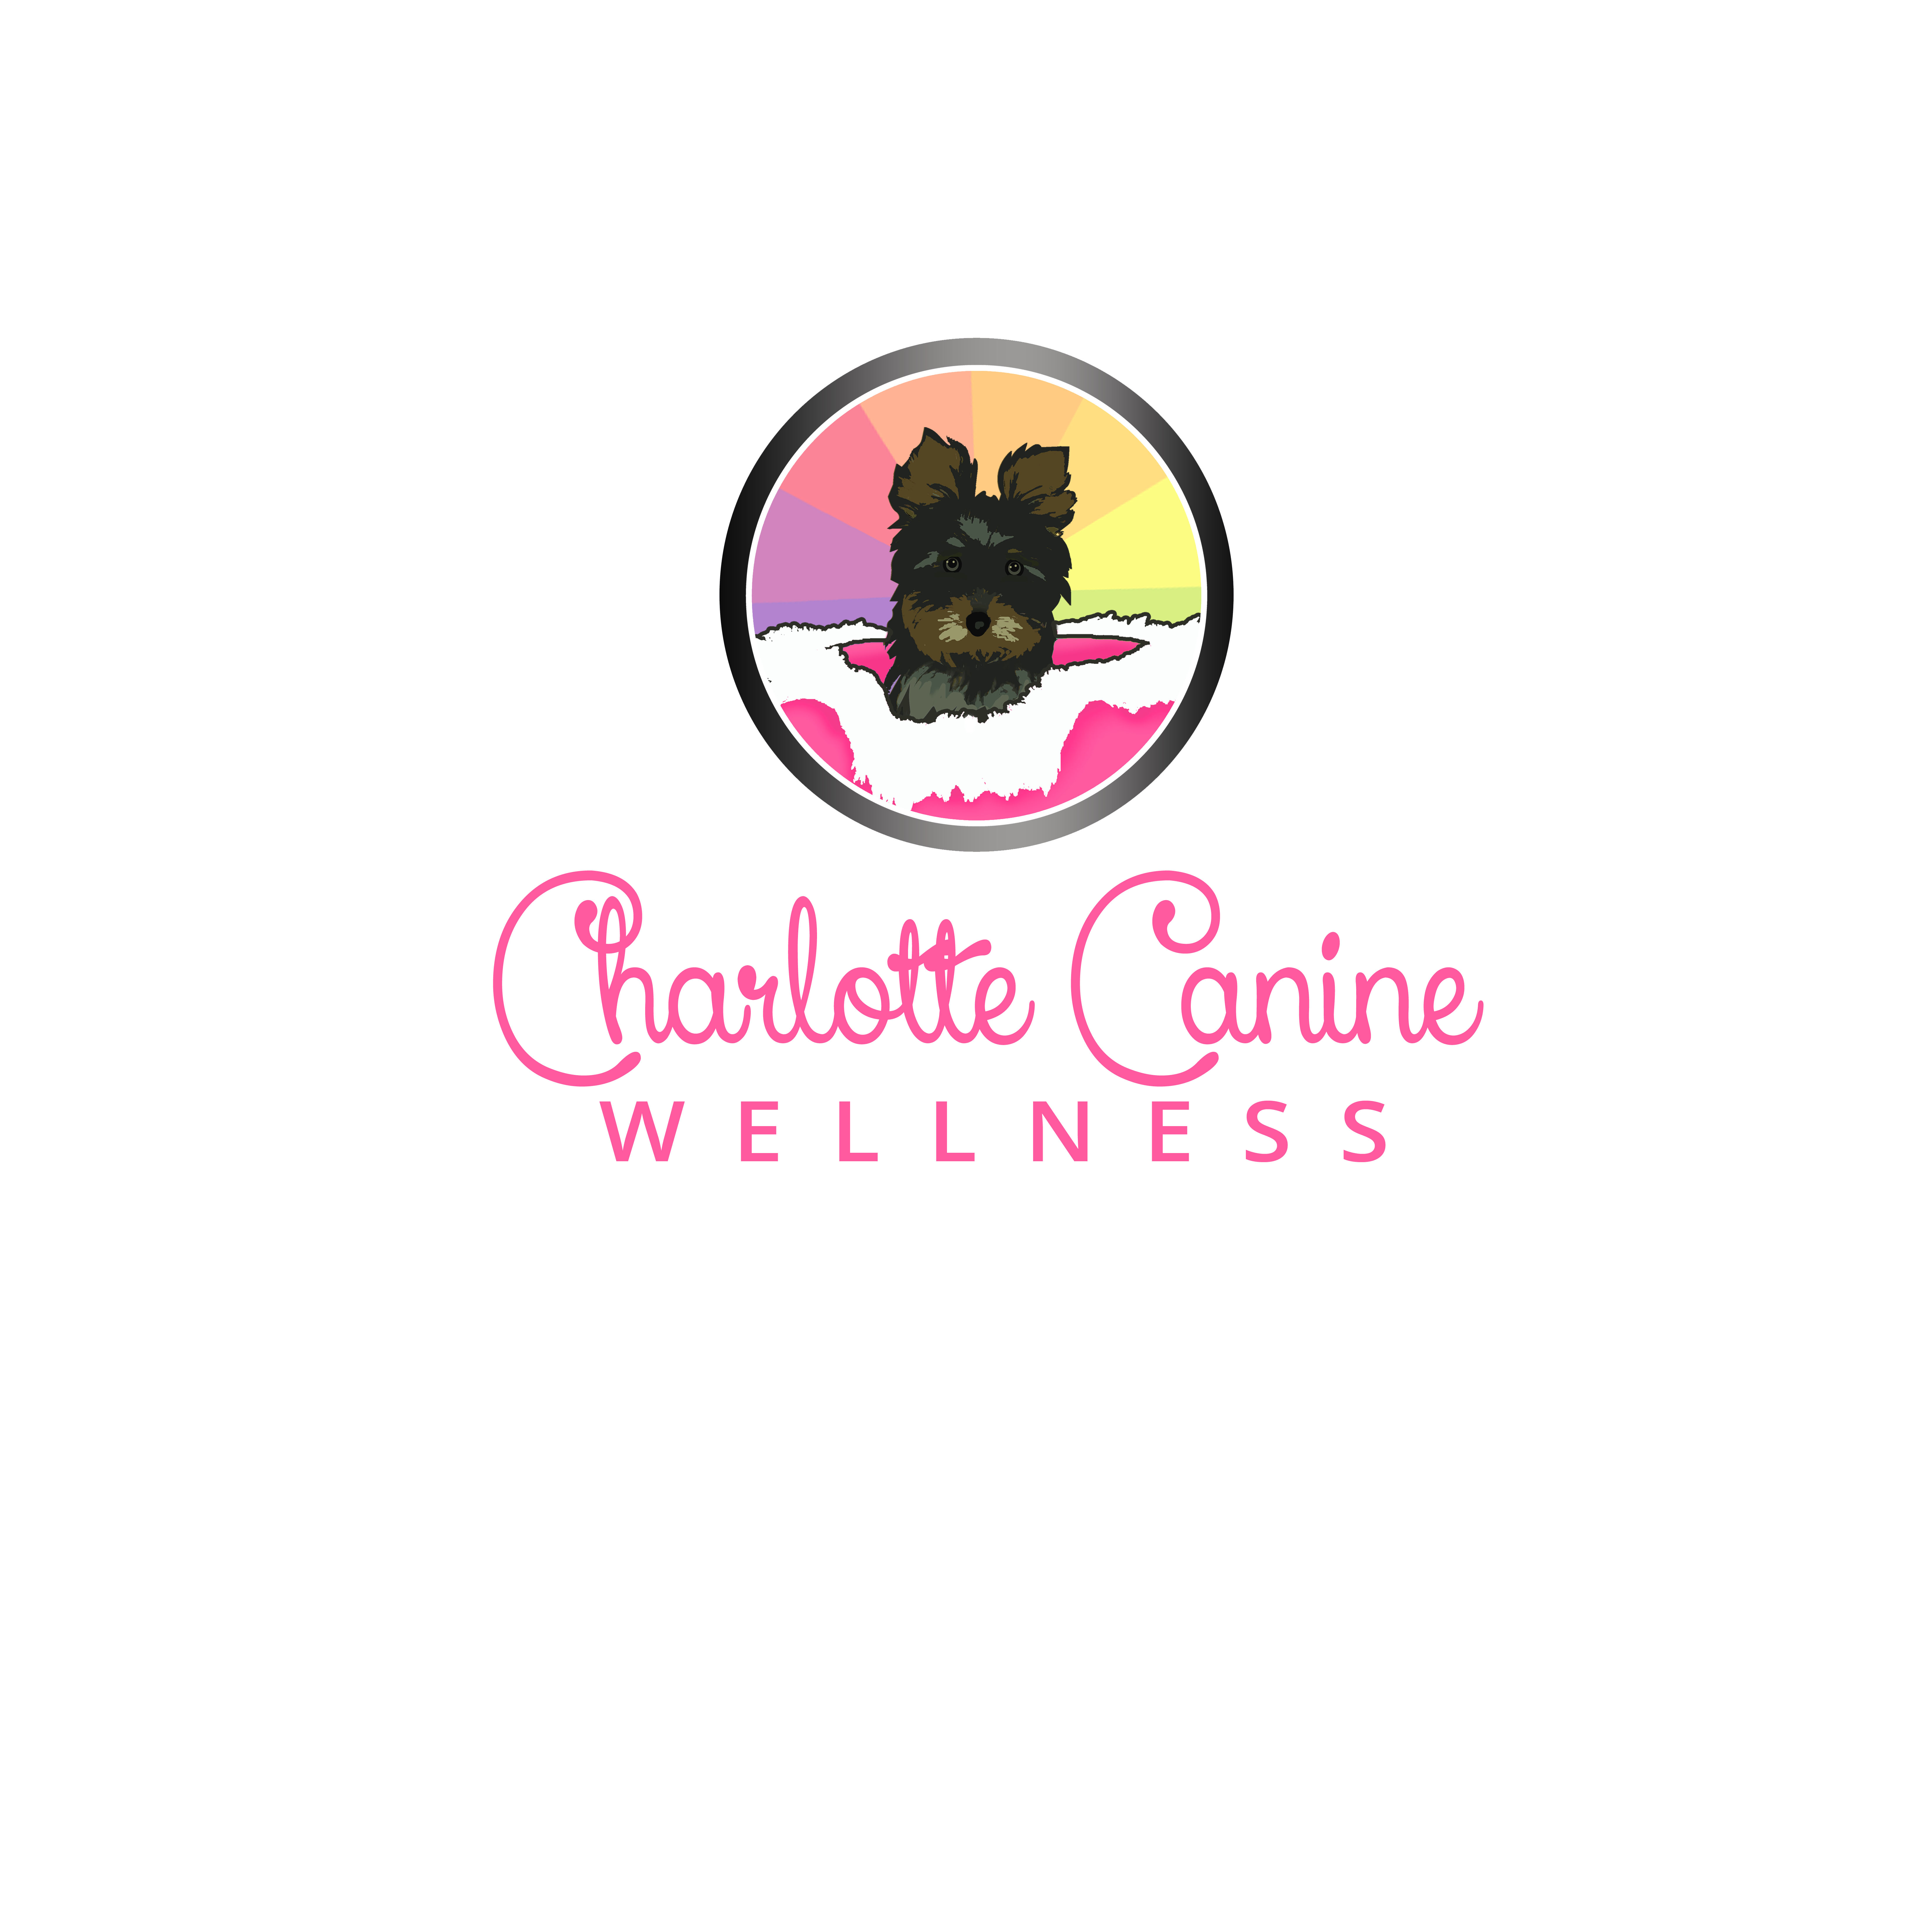 Logo Design by Allan Esclamado - Entry No. 102 in the Logo Design Contest New Logo Design for Charlotte Canine Wellness.